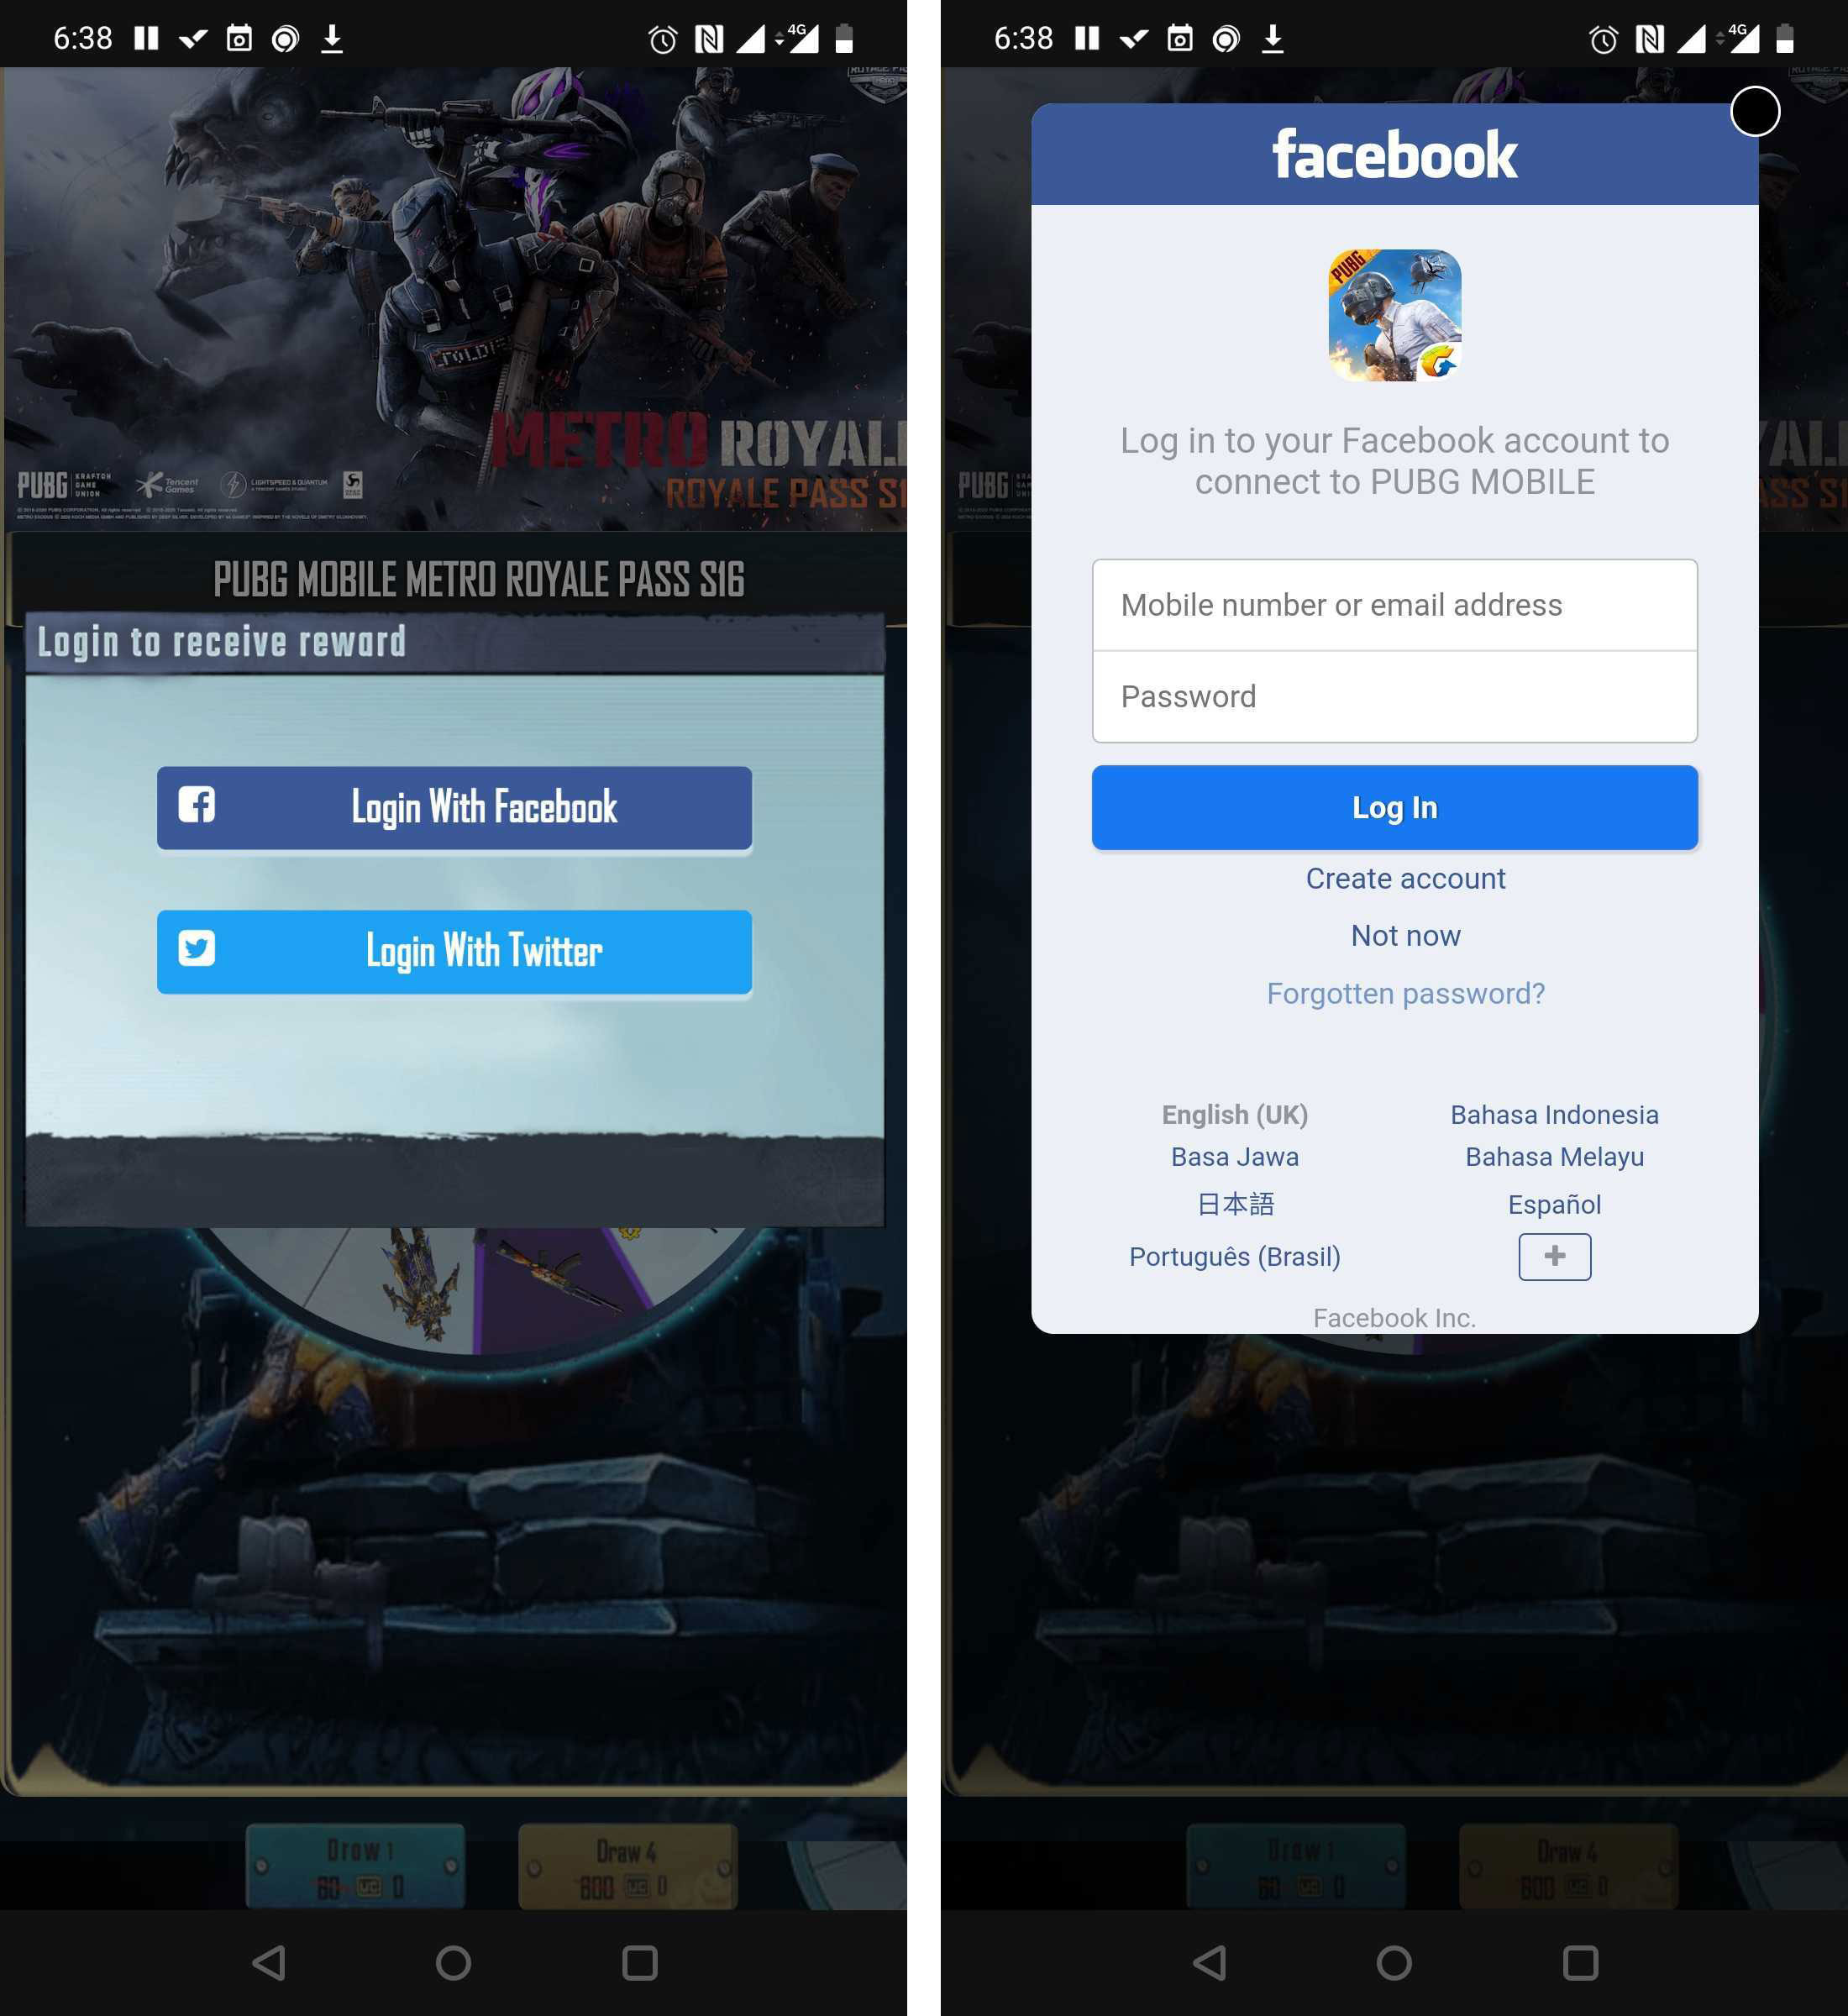 Phishing pages with Twitter or Facebook login — a familiar option for PUBG Mobile players